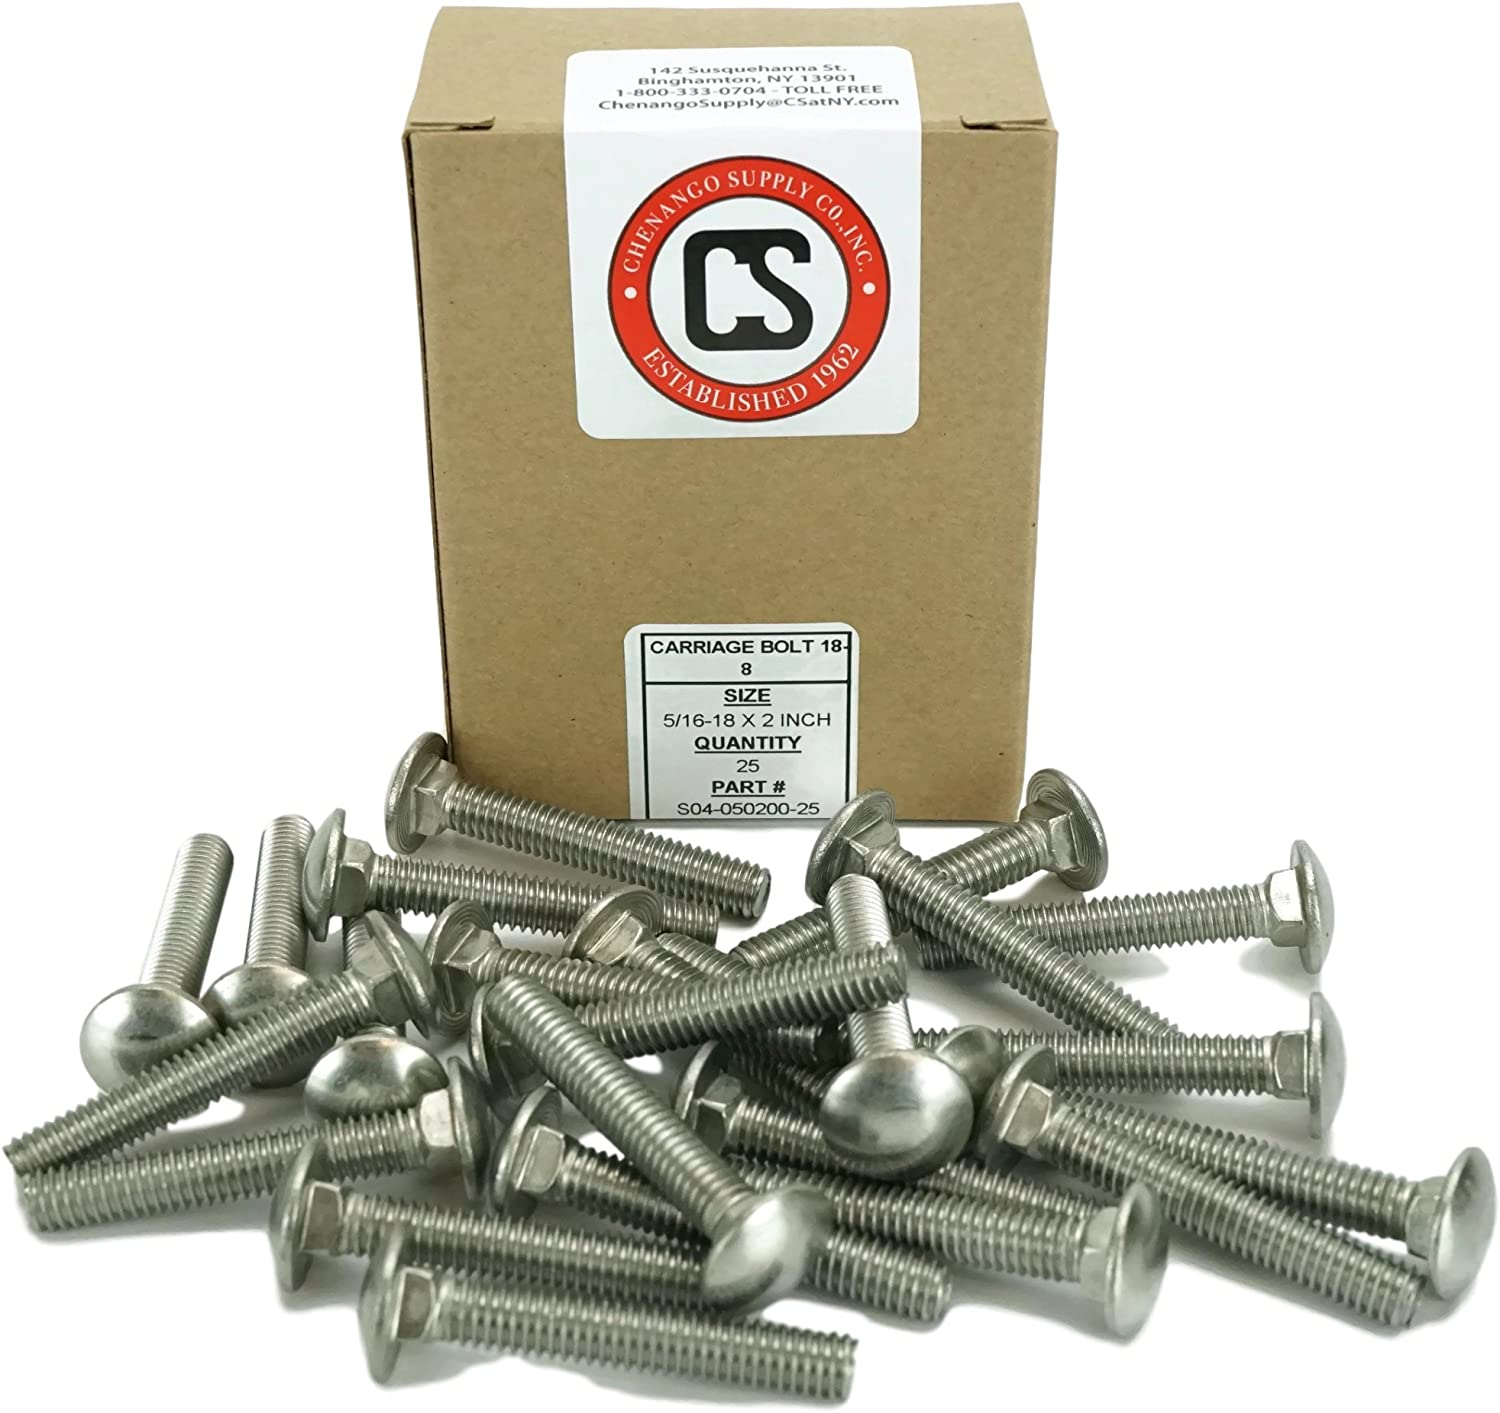 Stainless 5//16-18 x 1-1//2 Carriage Bolt 18-8 Stainless Steel,25 Pieces 1 to 5 Lengths Available in Listing 5//16-18x1-1//2